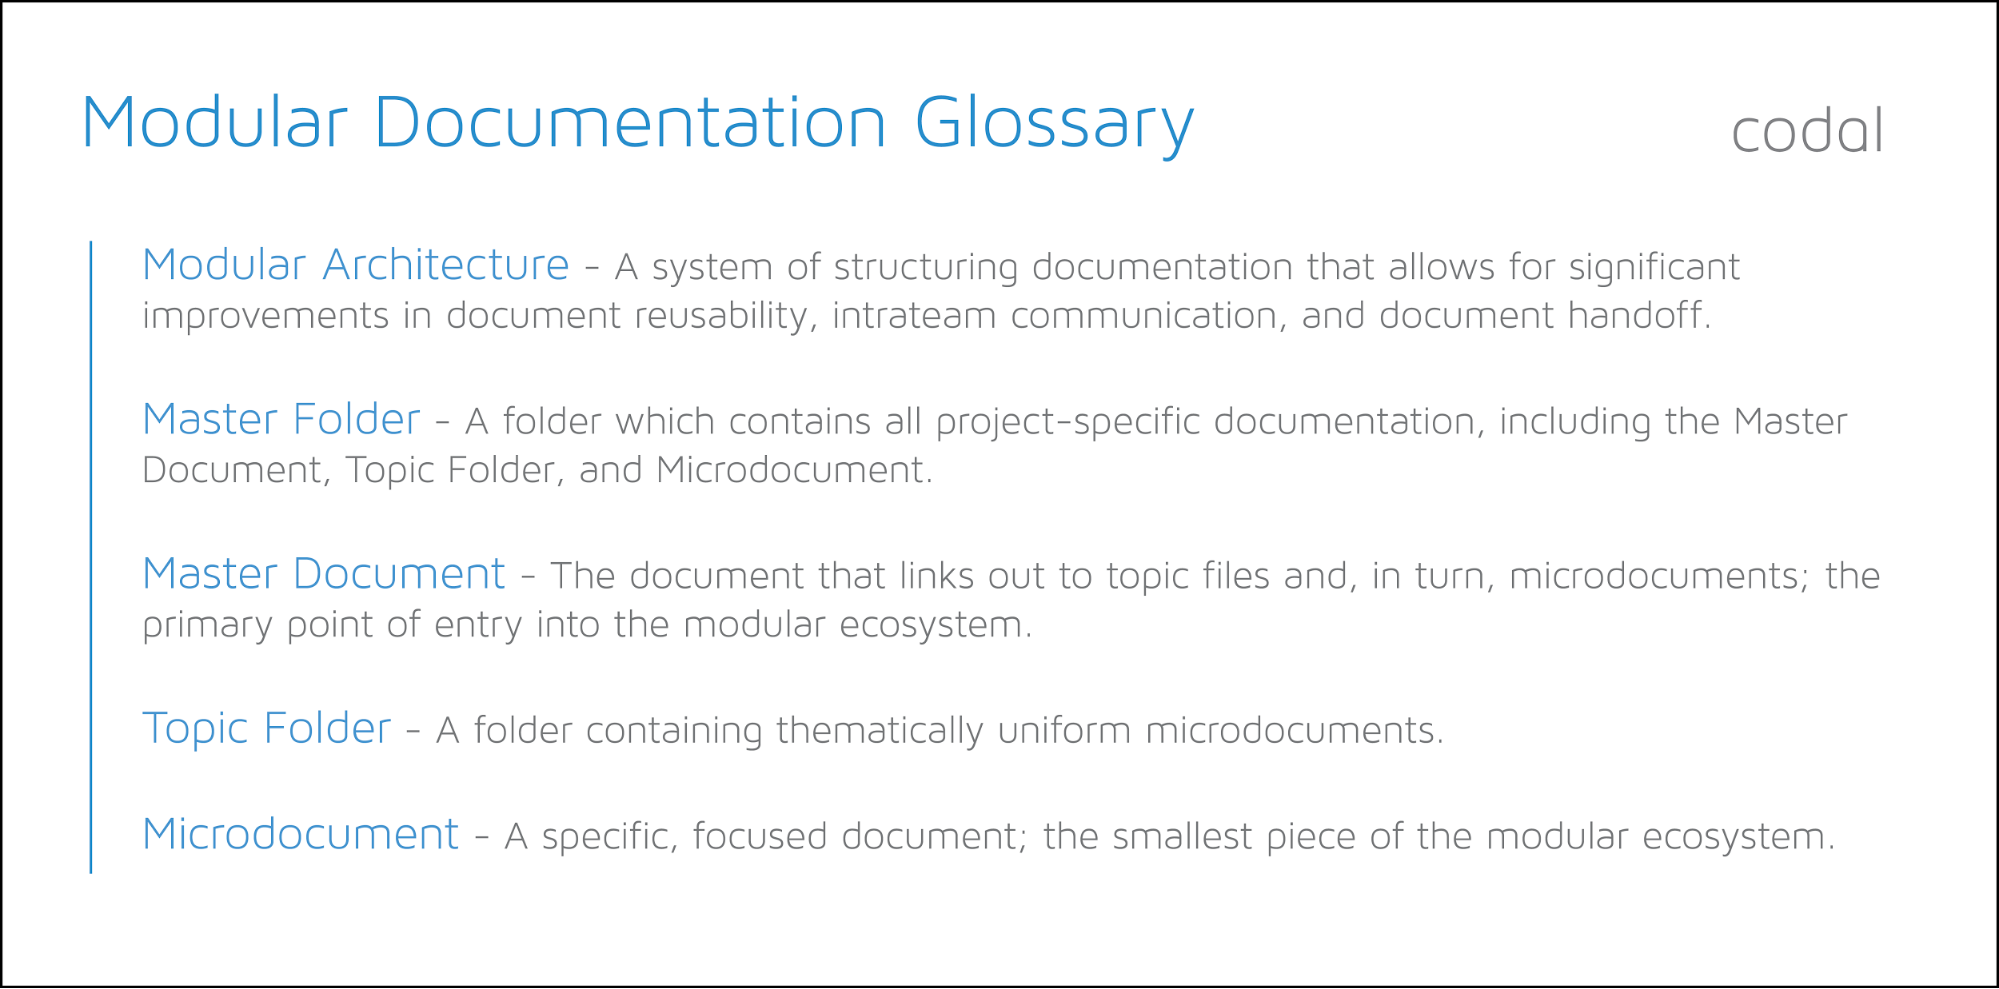 Modular documentation glossary